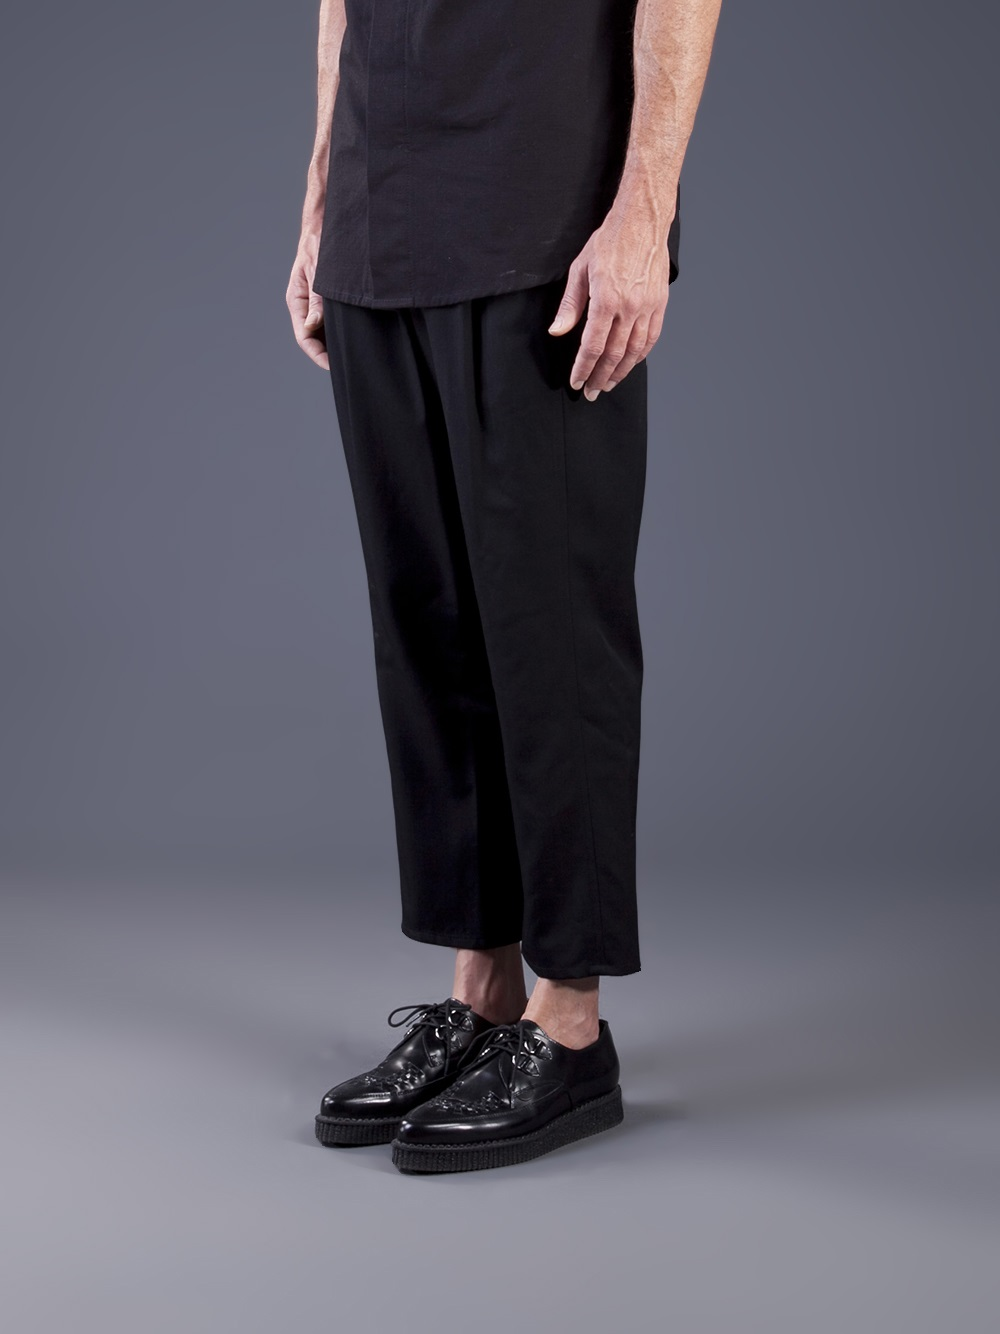 Find great deals on eBay for cropped black pants. Shop with confidence.